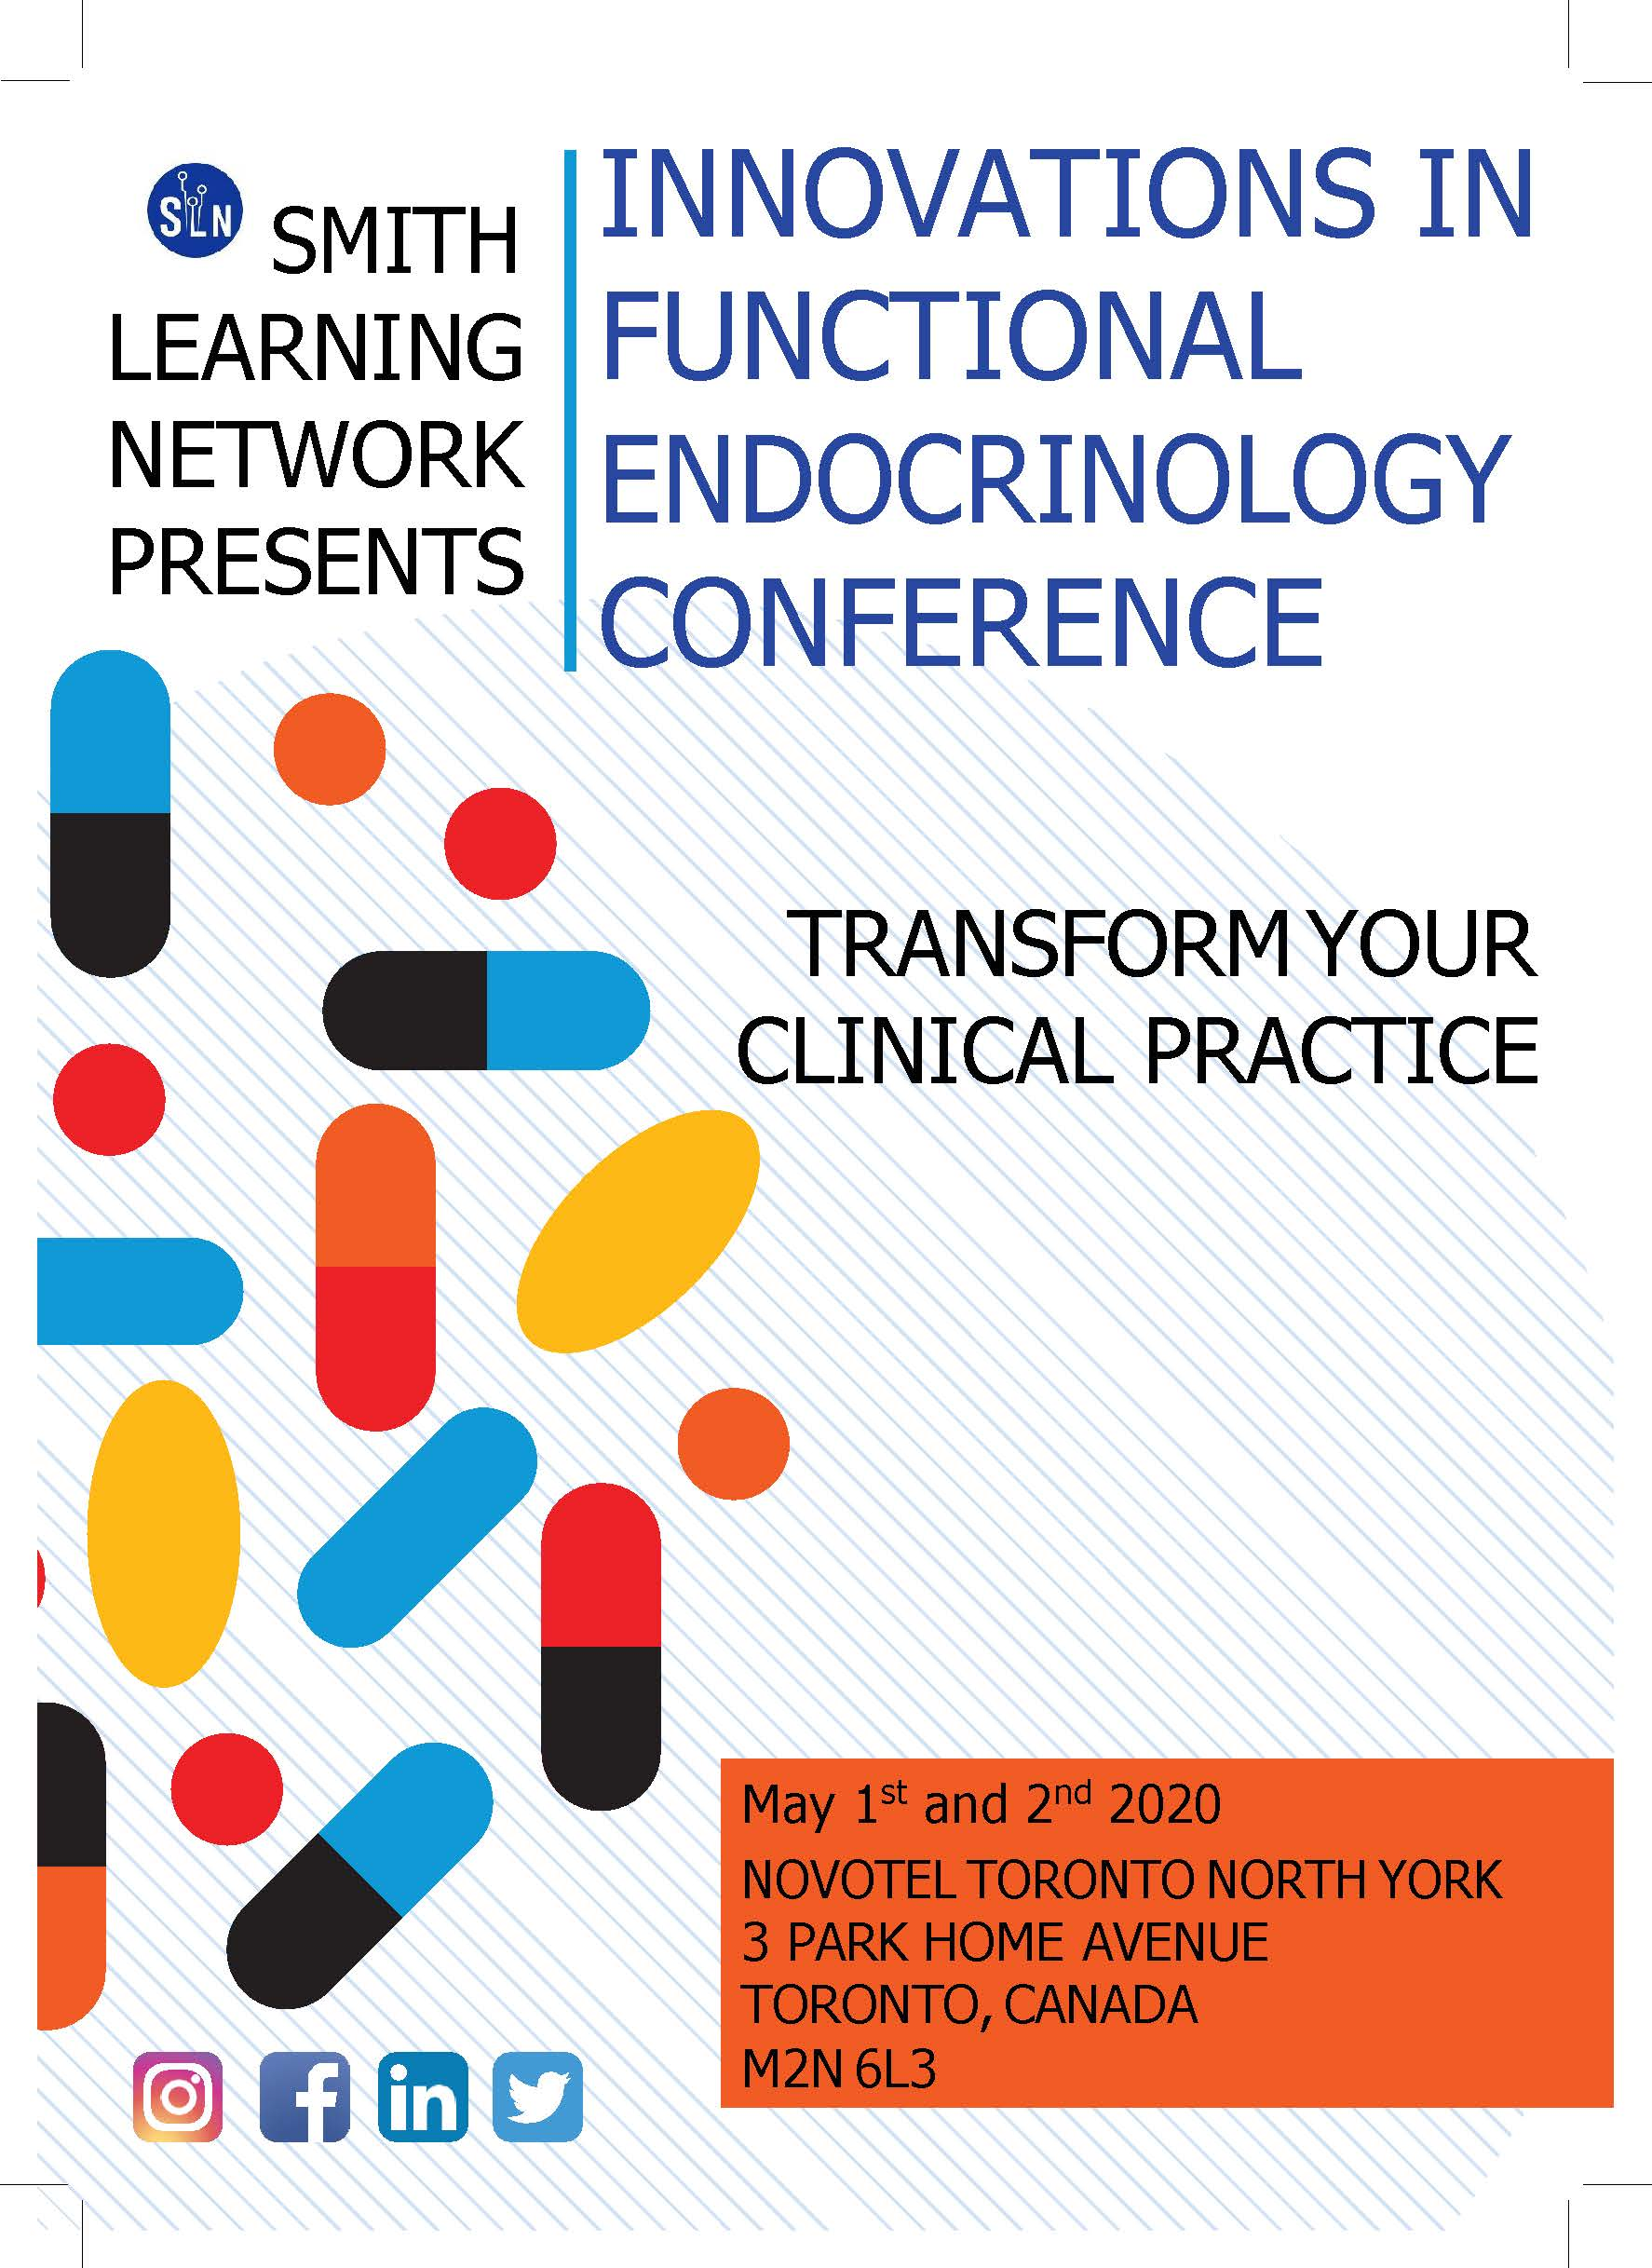 PRACTITIONER EVENT INNOVATIONS IN FUNCTIONAL ENDOCRINOLOGY: TRANSFORM YOUR CLINICAL PRACTICE